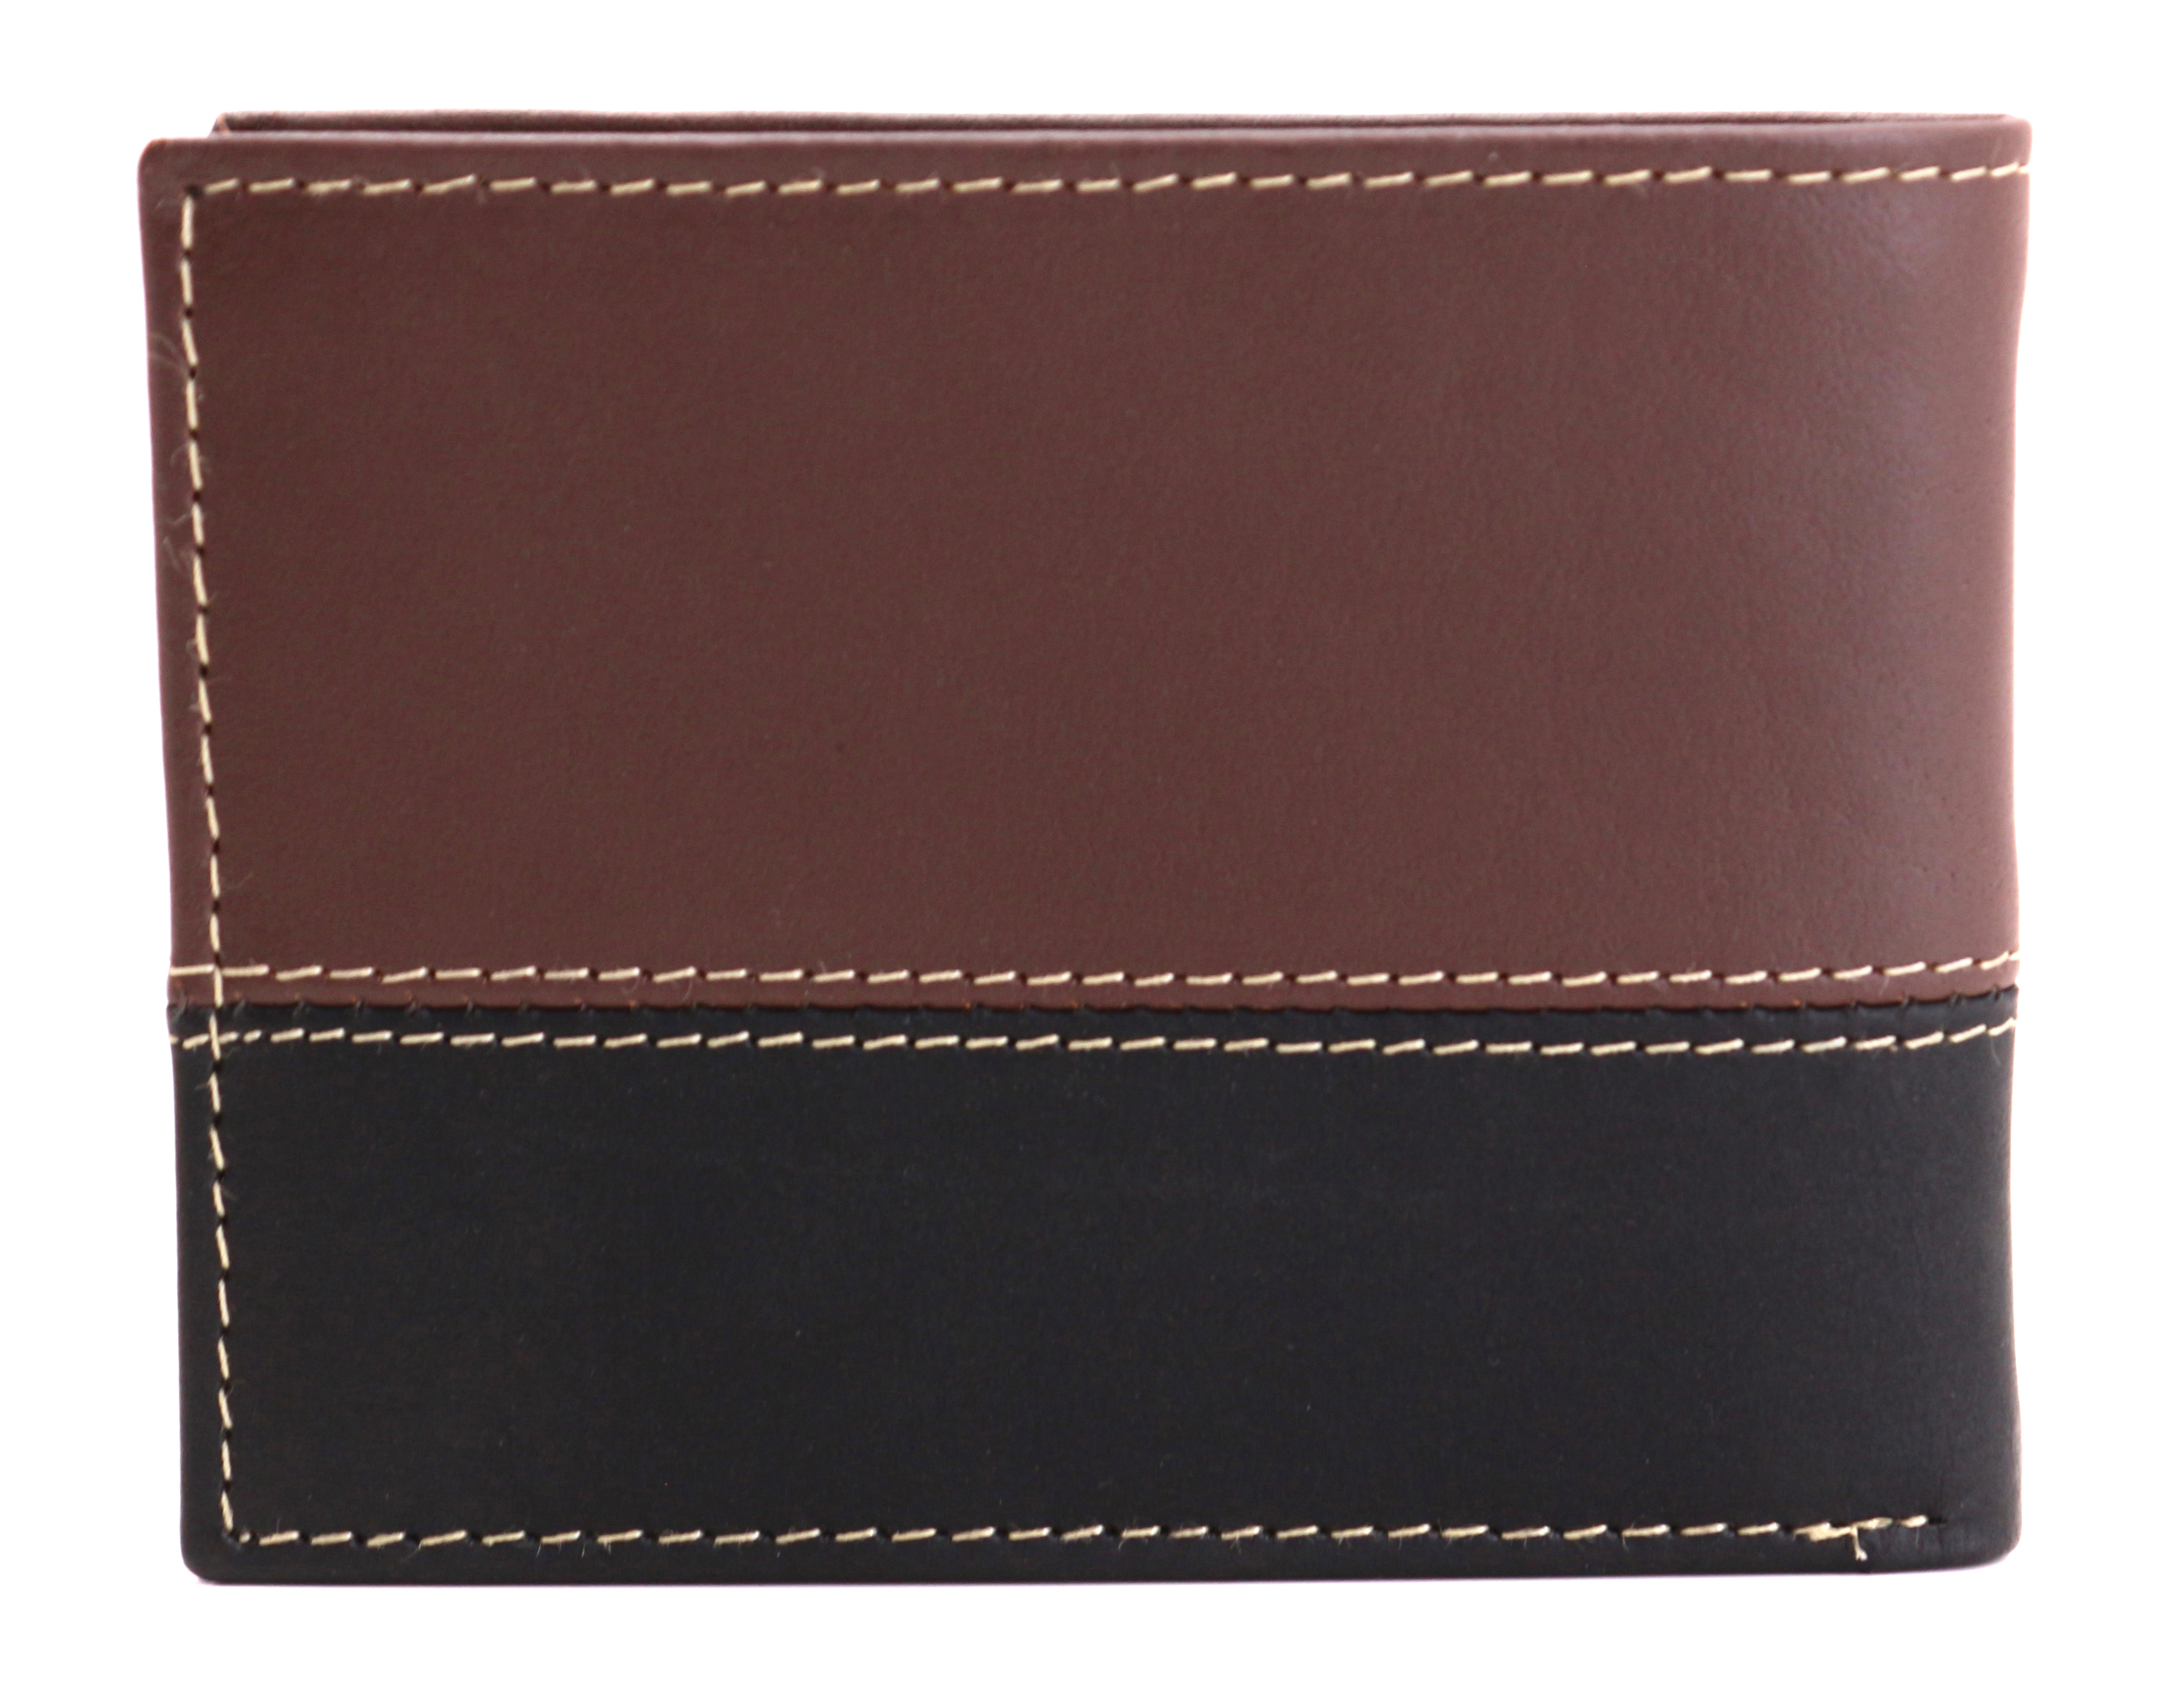 Timberland-Men-039-s-Genuine-Two-Tone-Leather-Credit-Card-Billfold-Commuter-Wallet thumbnail 3